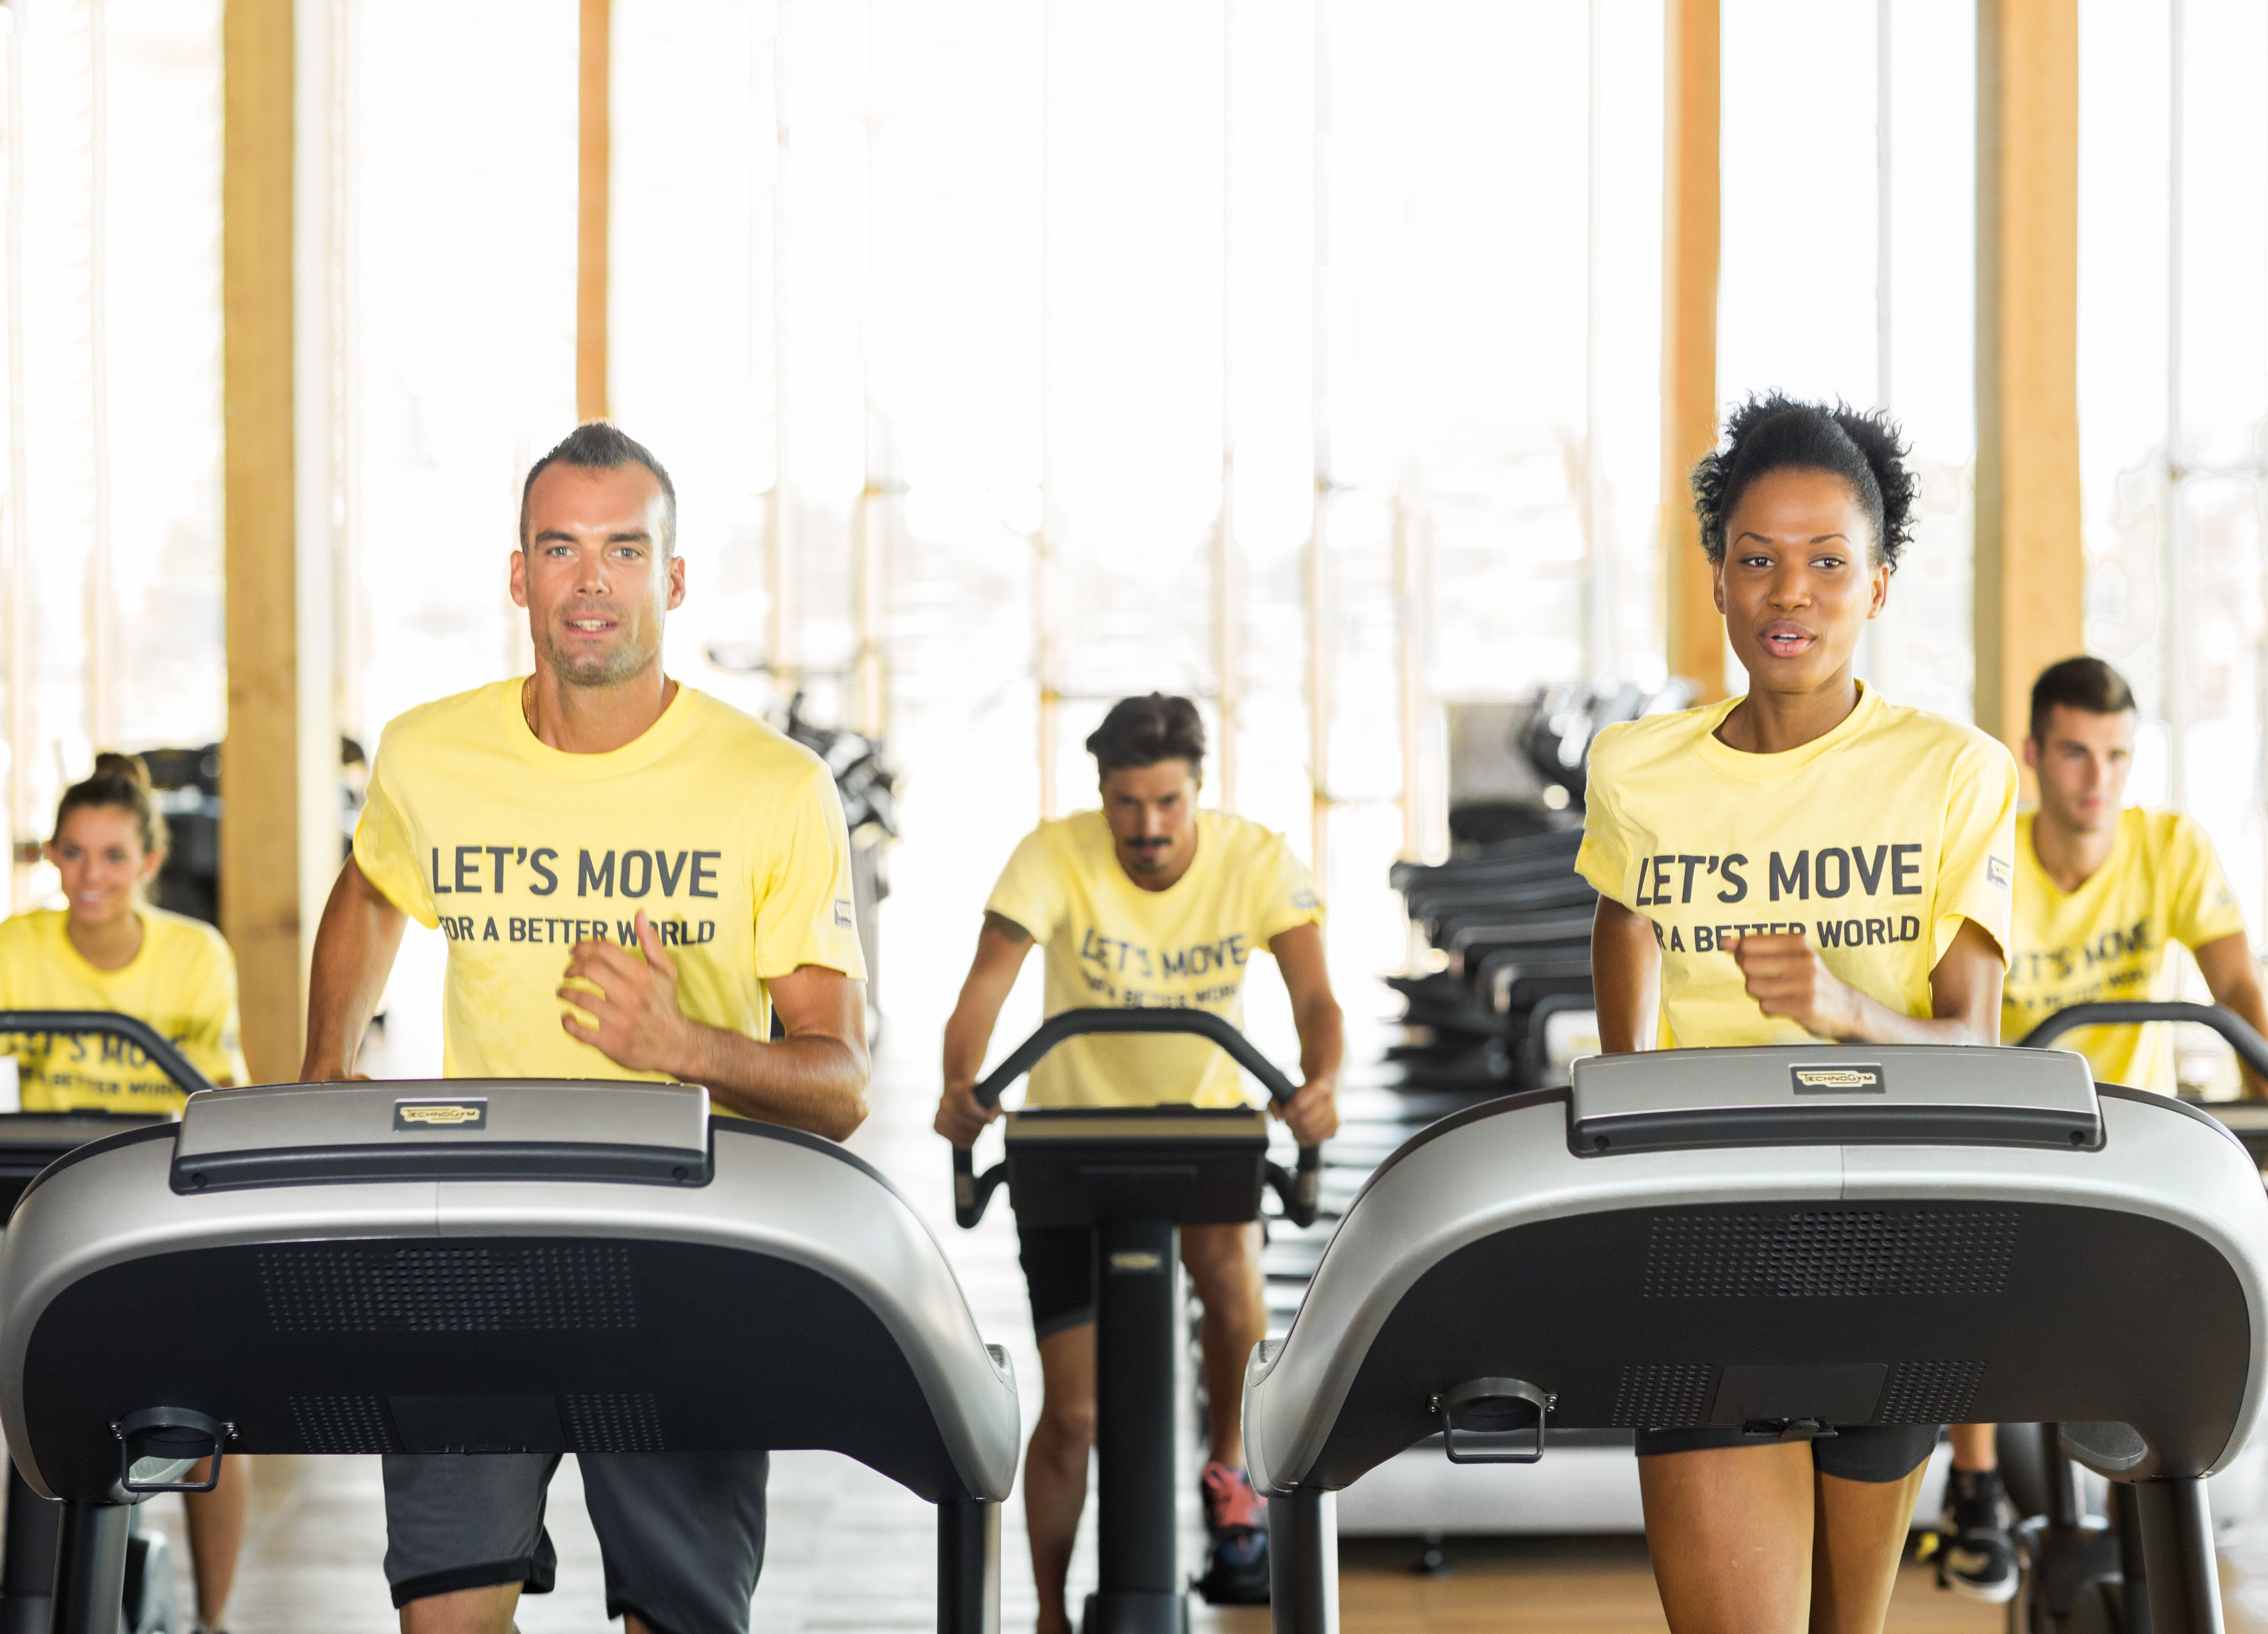 Let's Move for a Better World: go to the gym and make a difference!